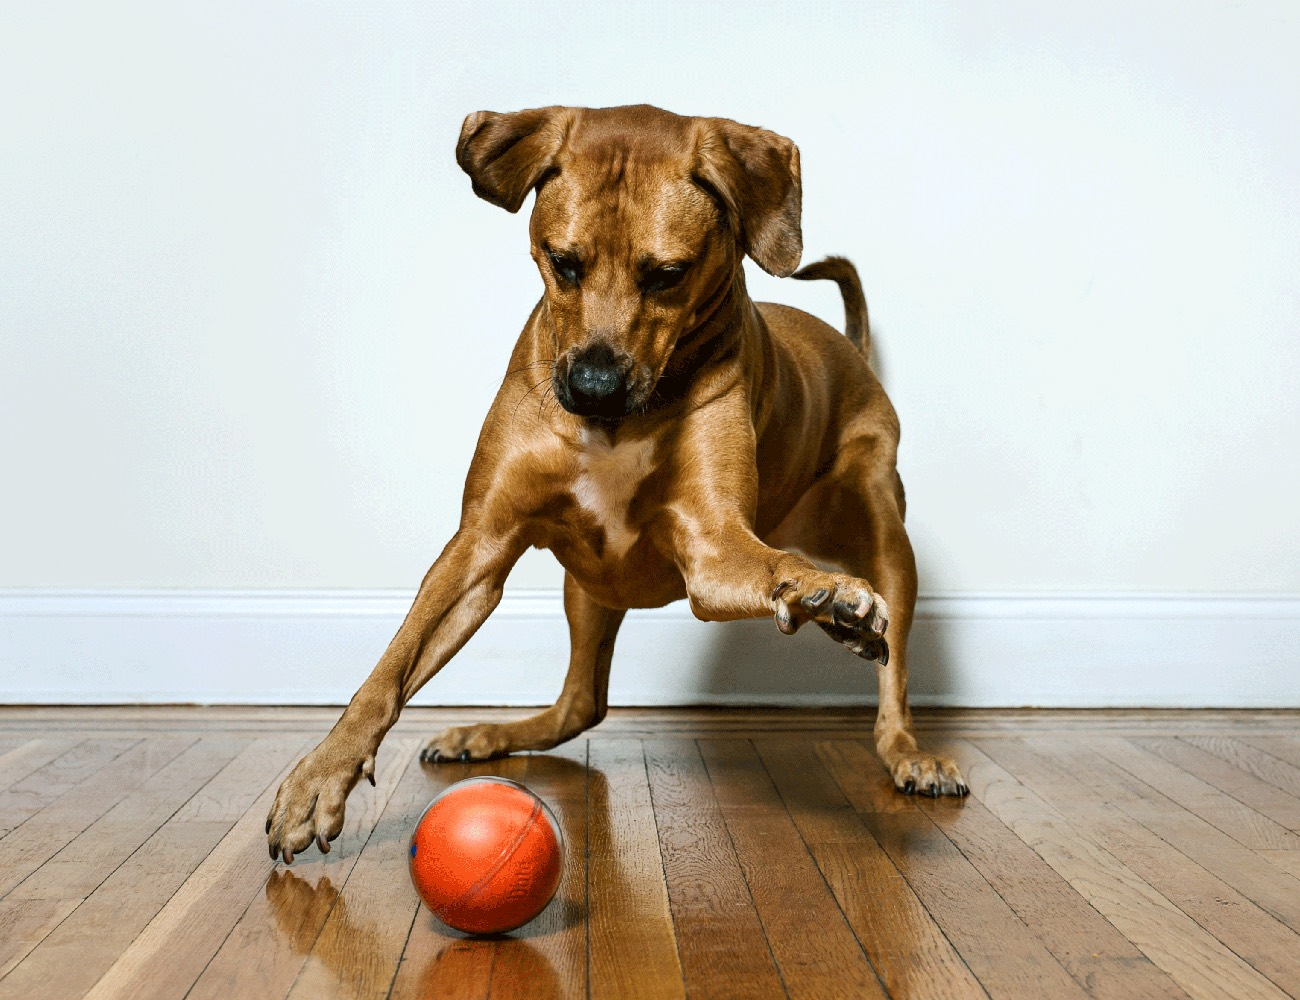 PlayDate – World's First Pet Camera in a Smart Ball